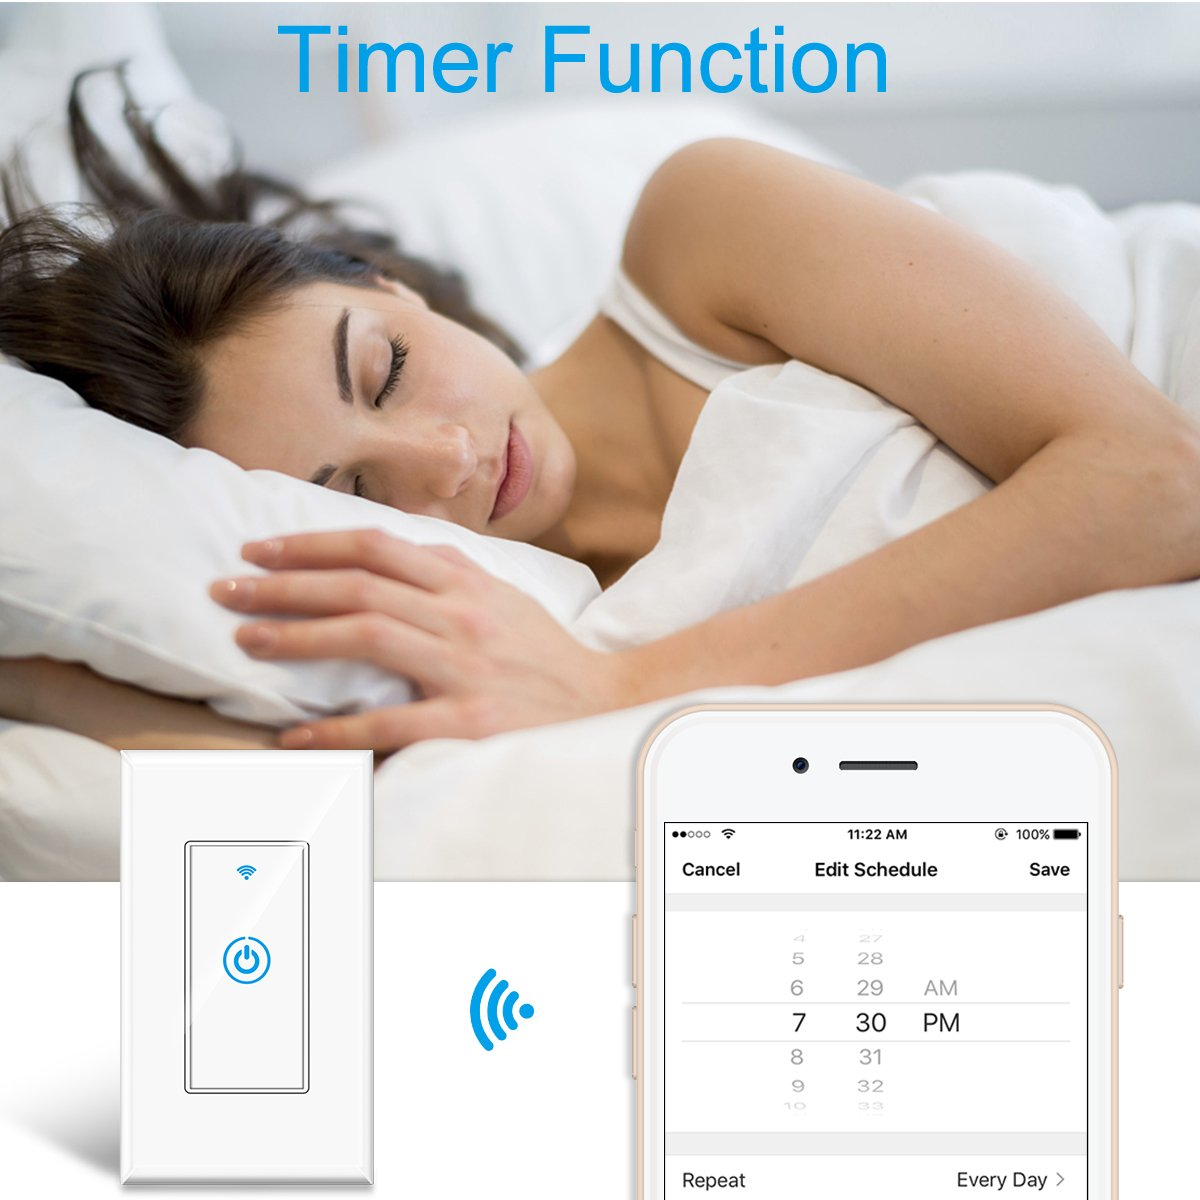 Smart Light Switch - Gosund Smart Wifi Light Wall Switch 15A Touch Timing Function Remote Control From Anywhere, Works with Alexa, Google Assistant And IFTTT, No Hub Required (1 pack) by Gosund (Image #3)